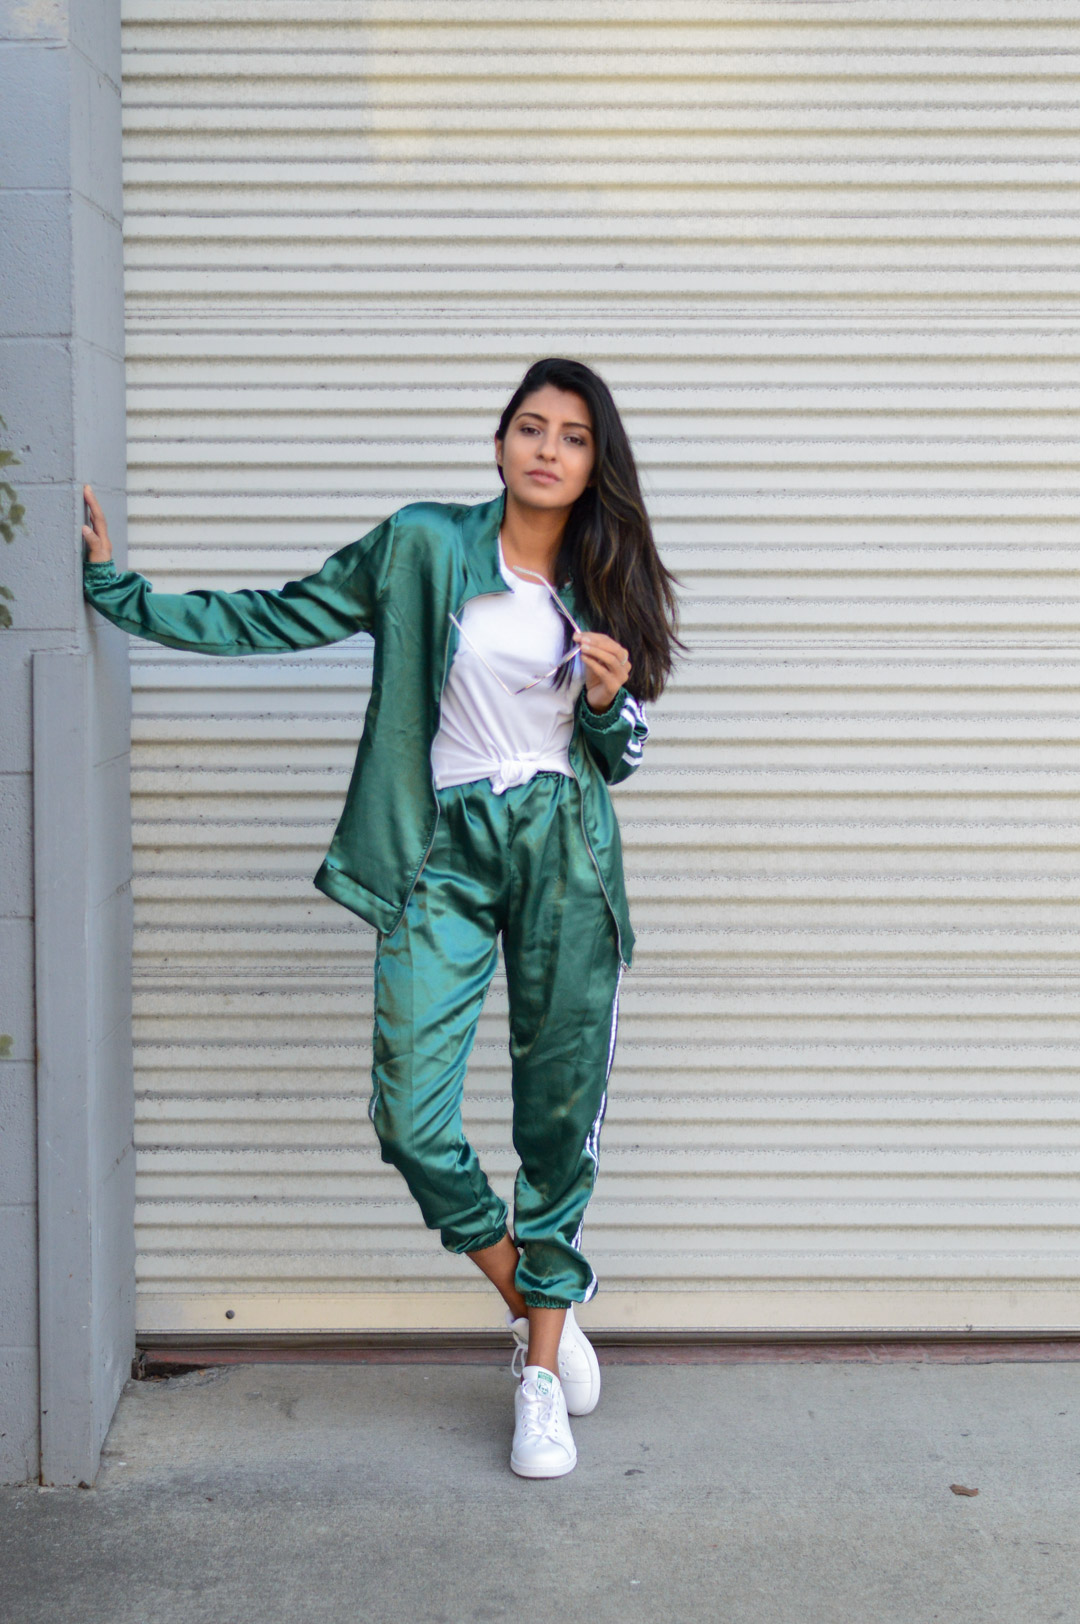 tracksuit-satin-green-sporty-chic-fall-fashion-outfit 4